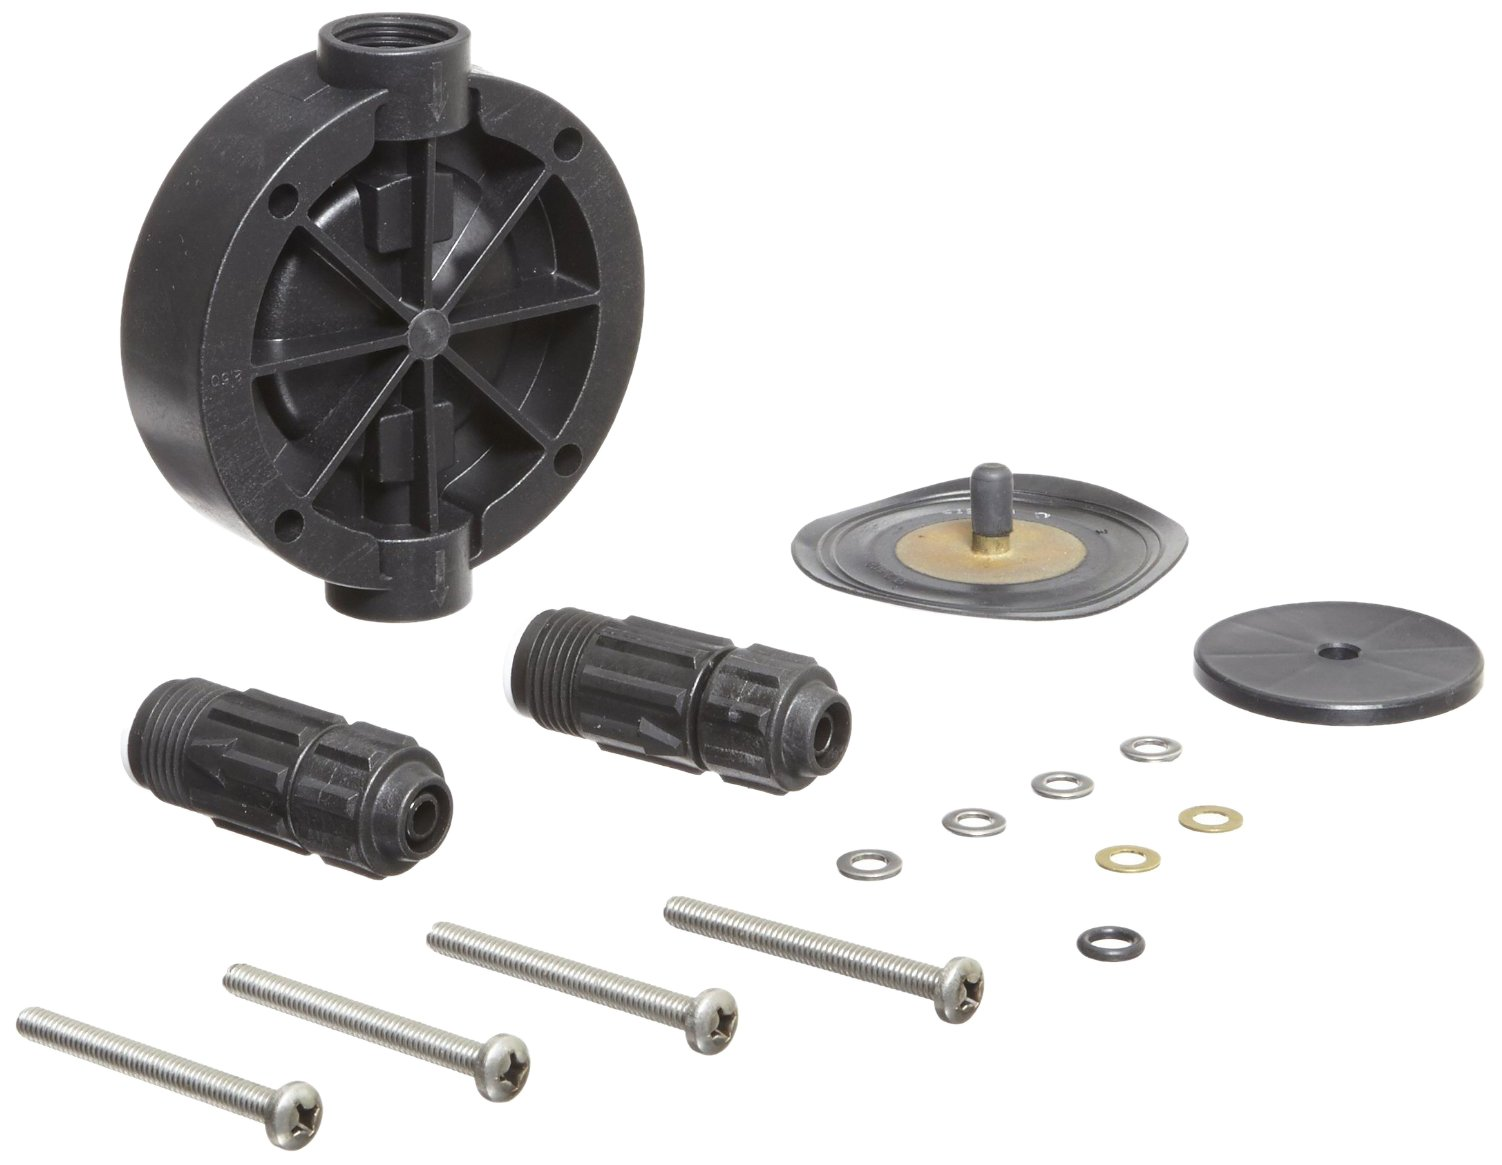 Pulsafeeder K7KTC3 Pump Repair Kit, Pulsatron, Includes Head, Diaphragm, Suction And Discharge Valves, Screws And Washers